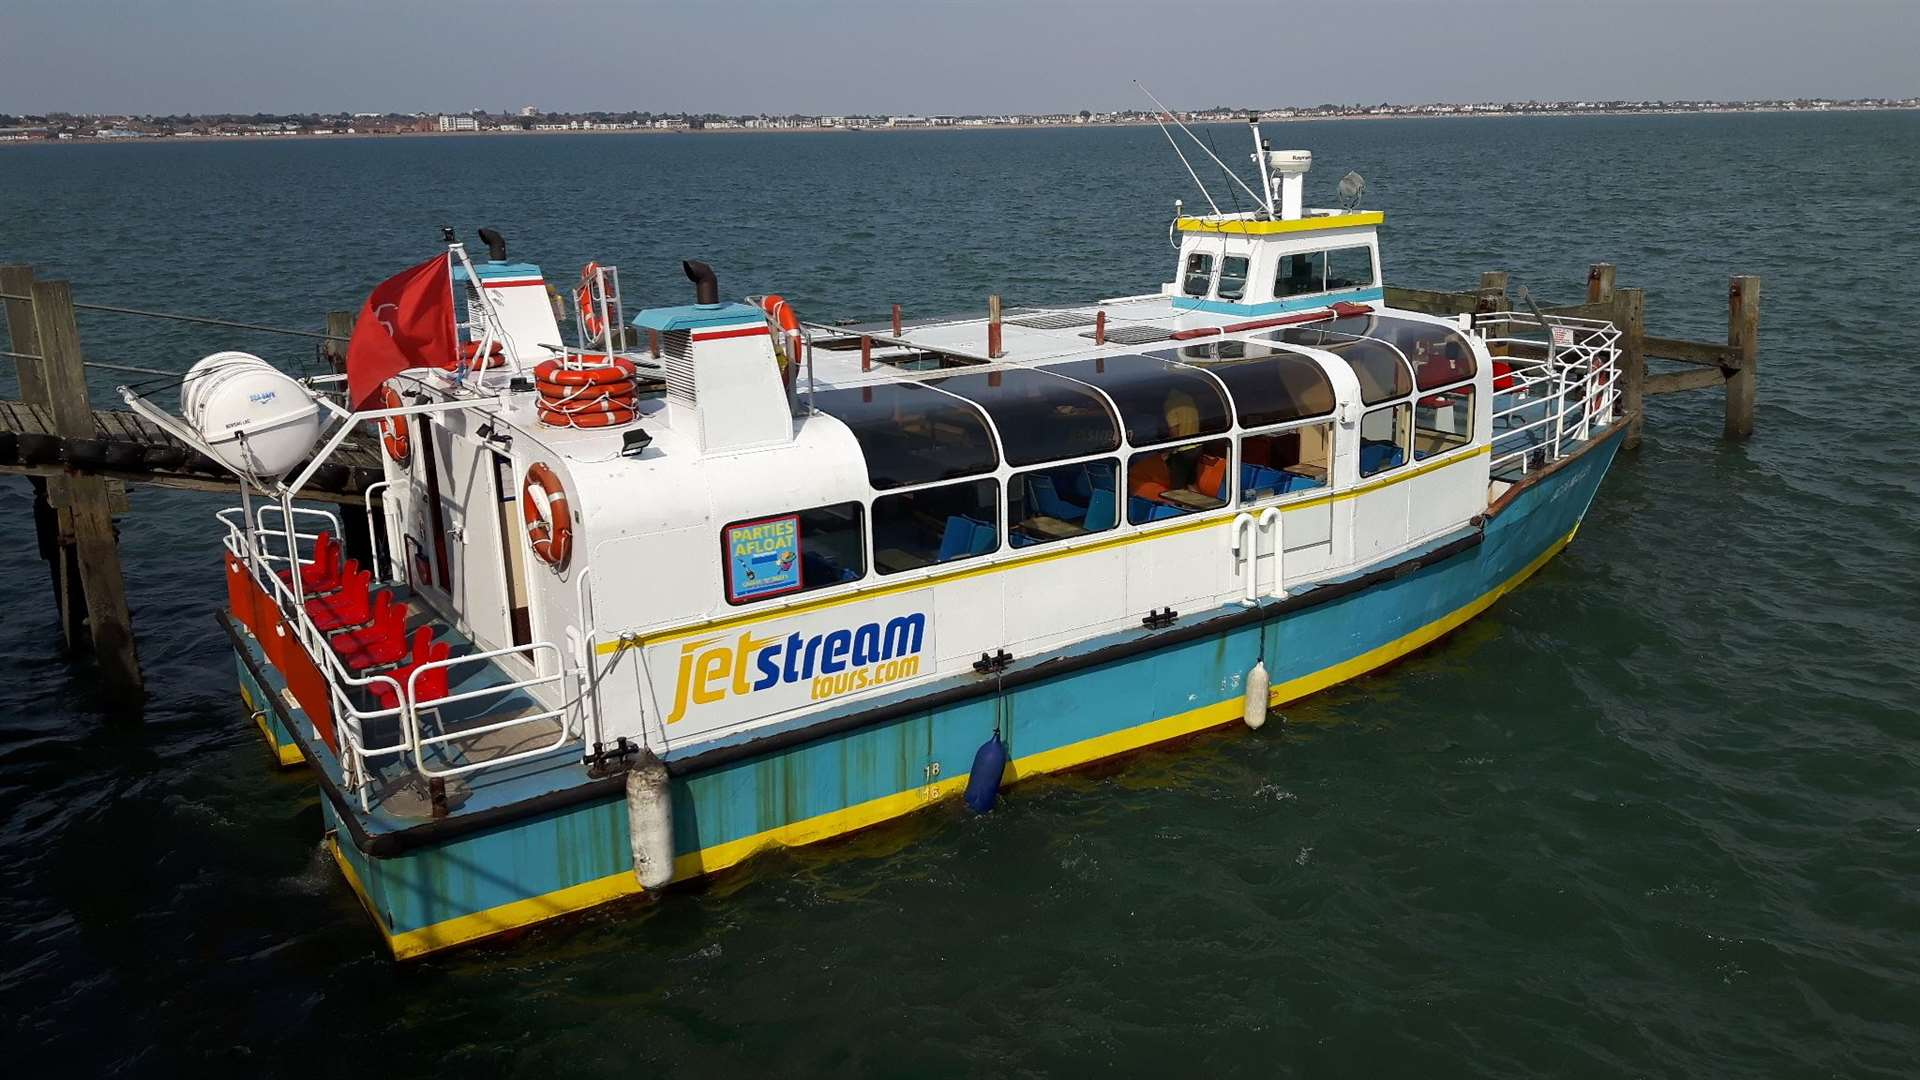 Jetstream Tours's Jacob Marley could take over the Sheppey to Southend service (40683407)